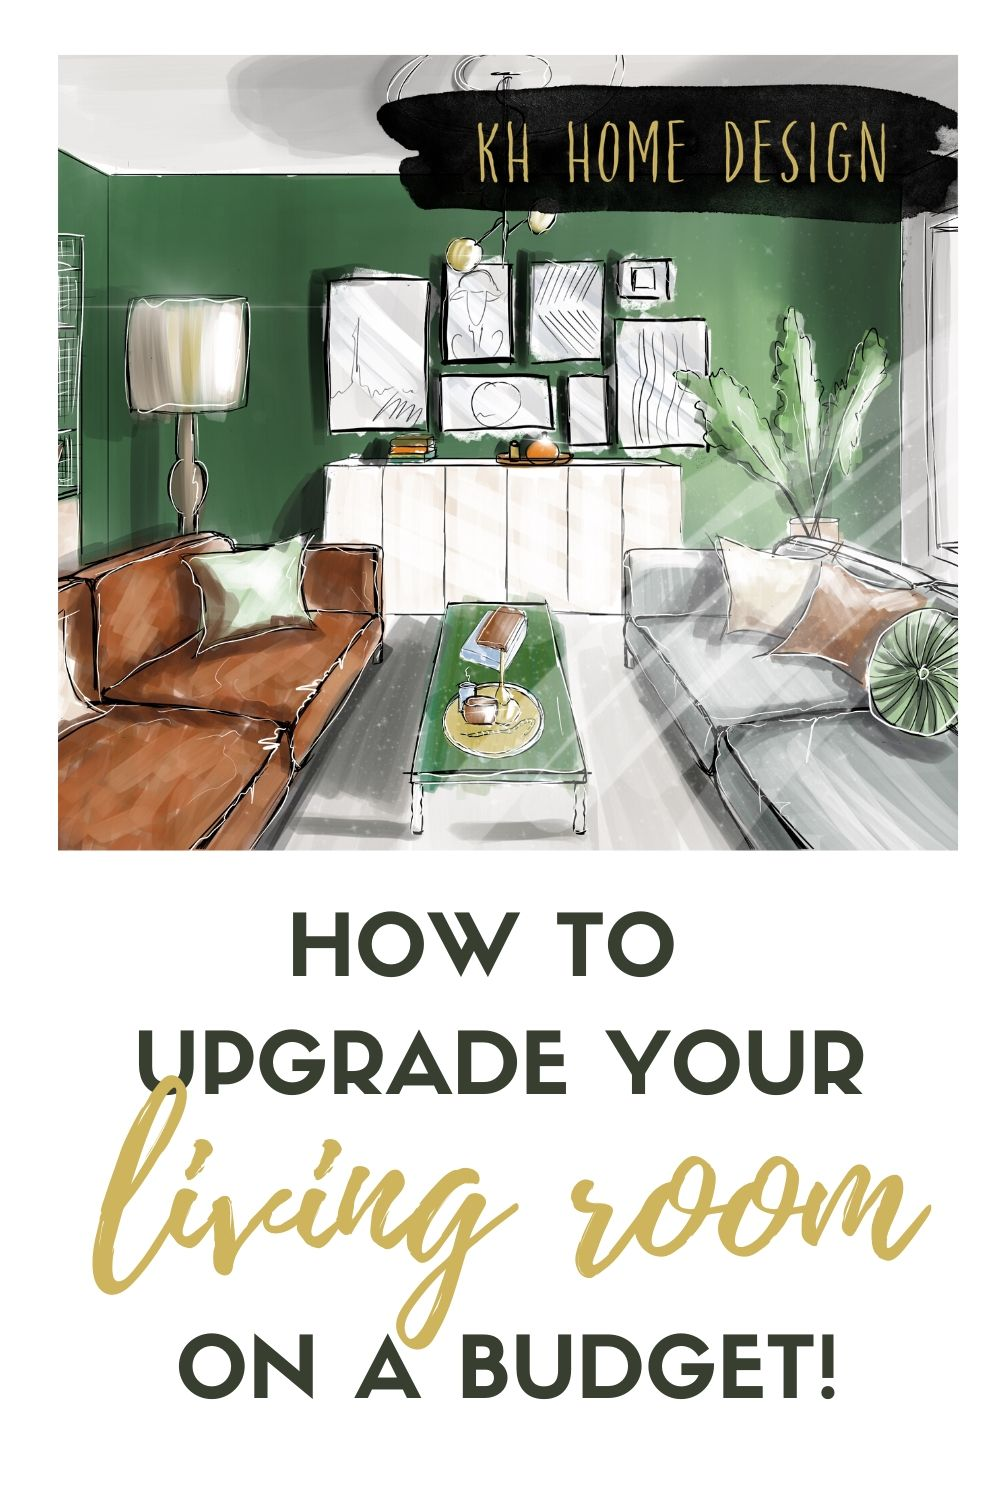 Upgrade your living room on a budget